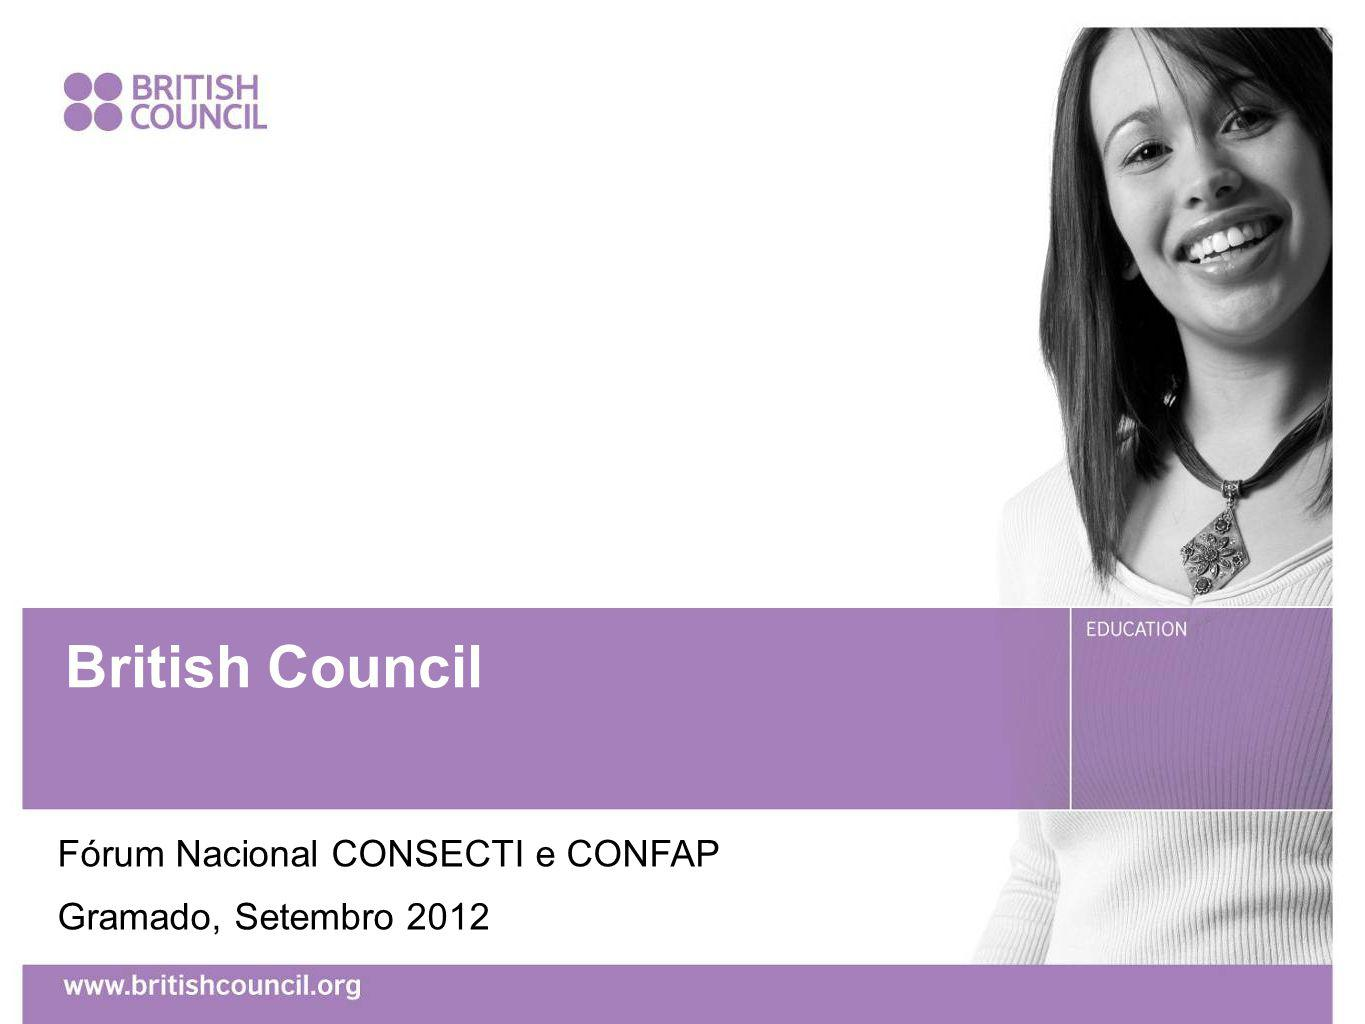 British Council Fórum Nacional CONSECTI e CONFAP